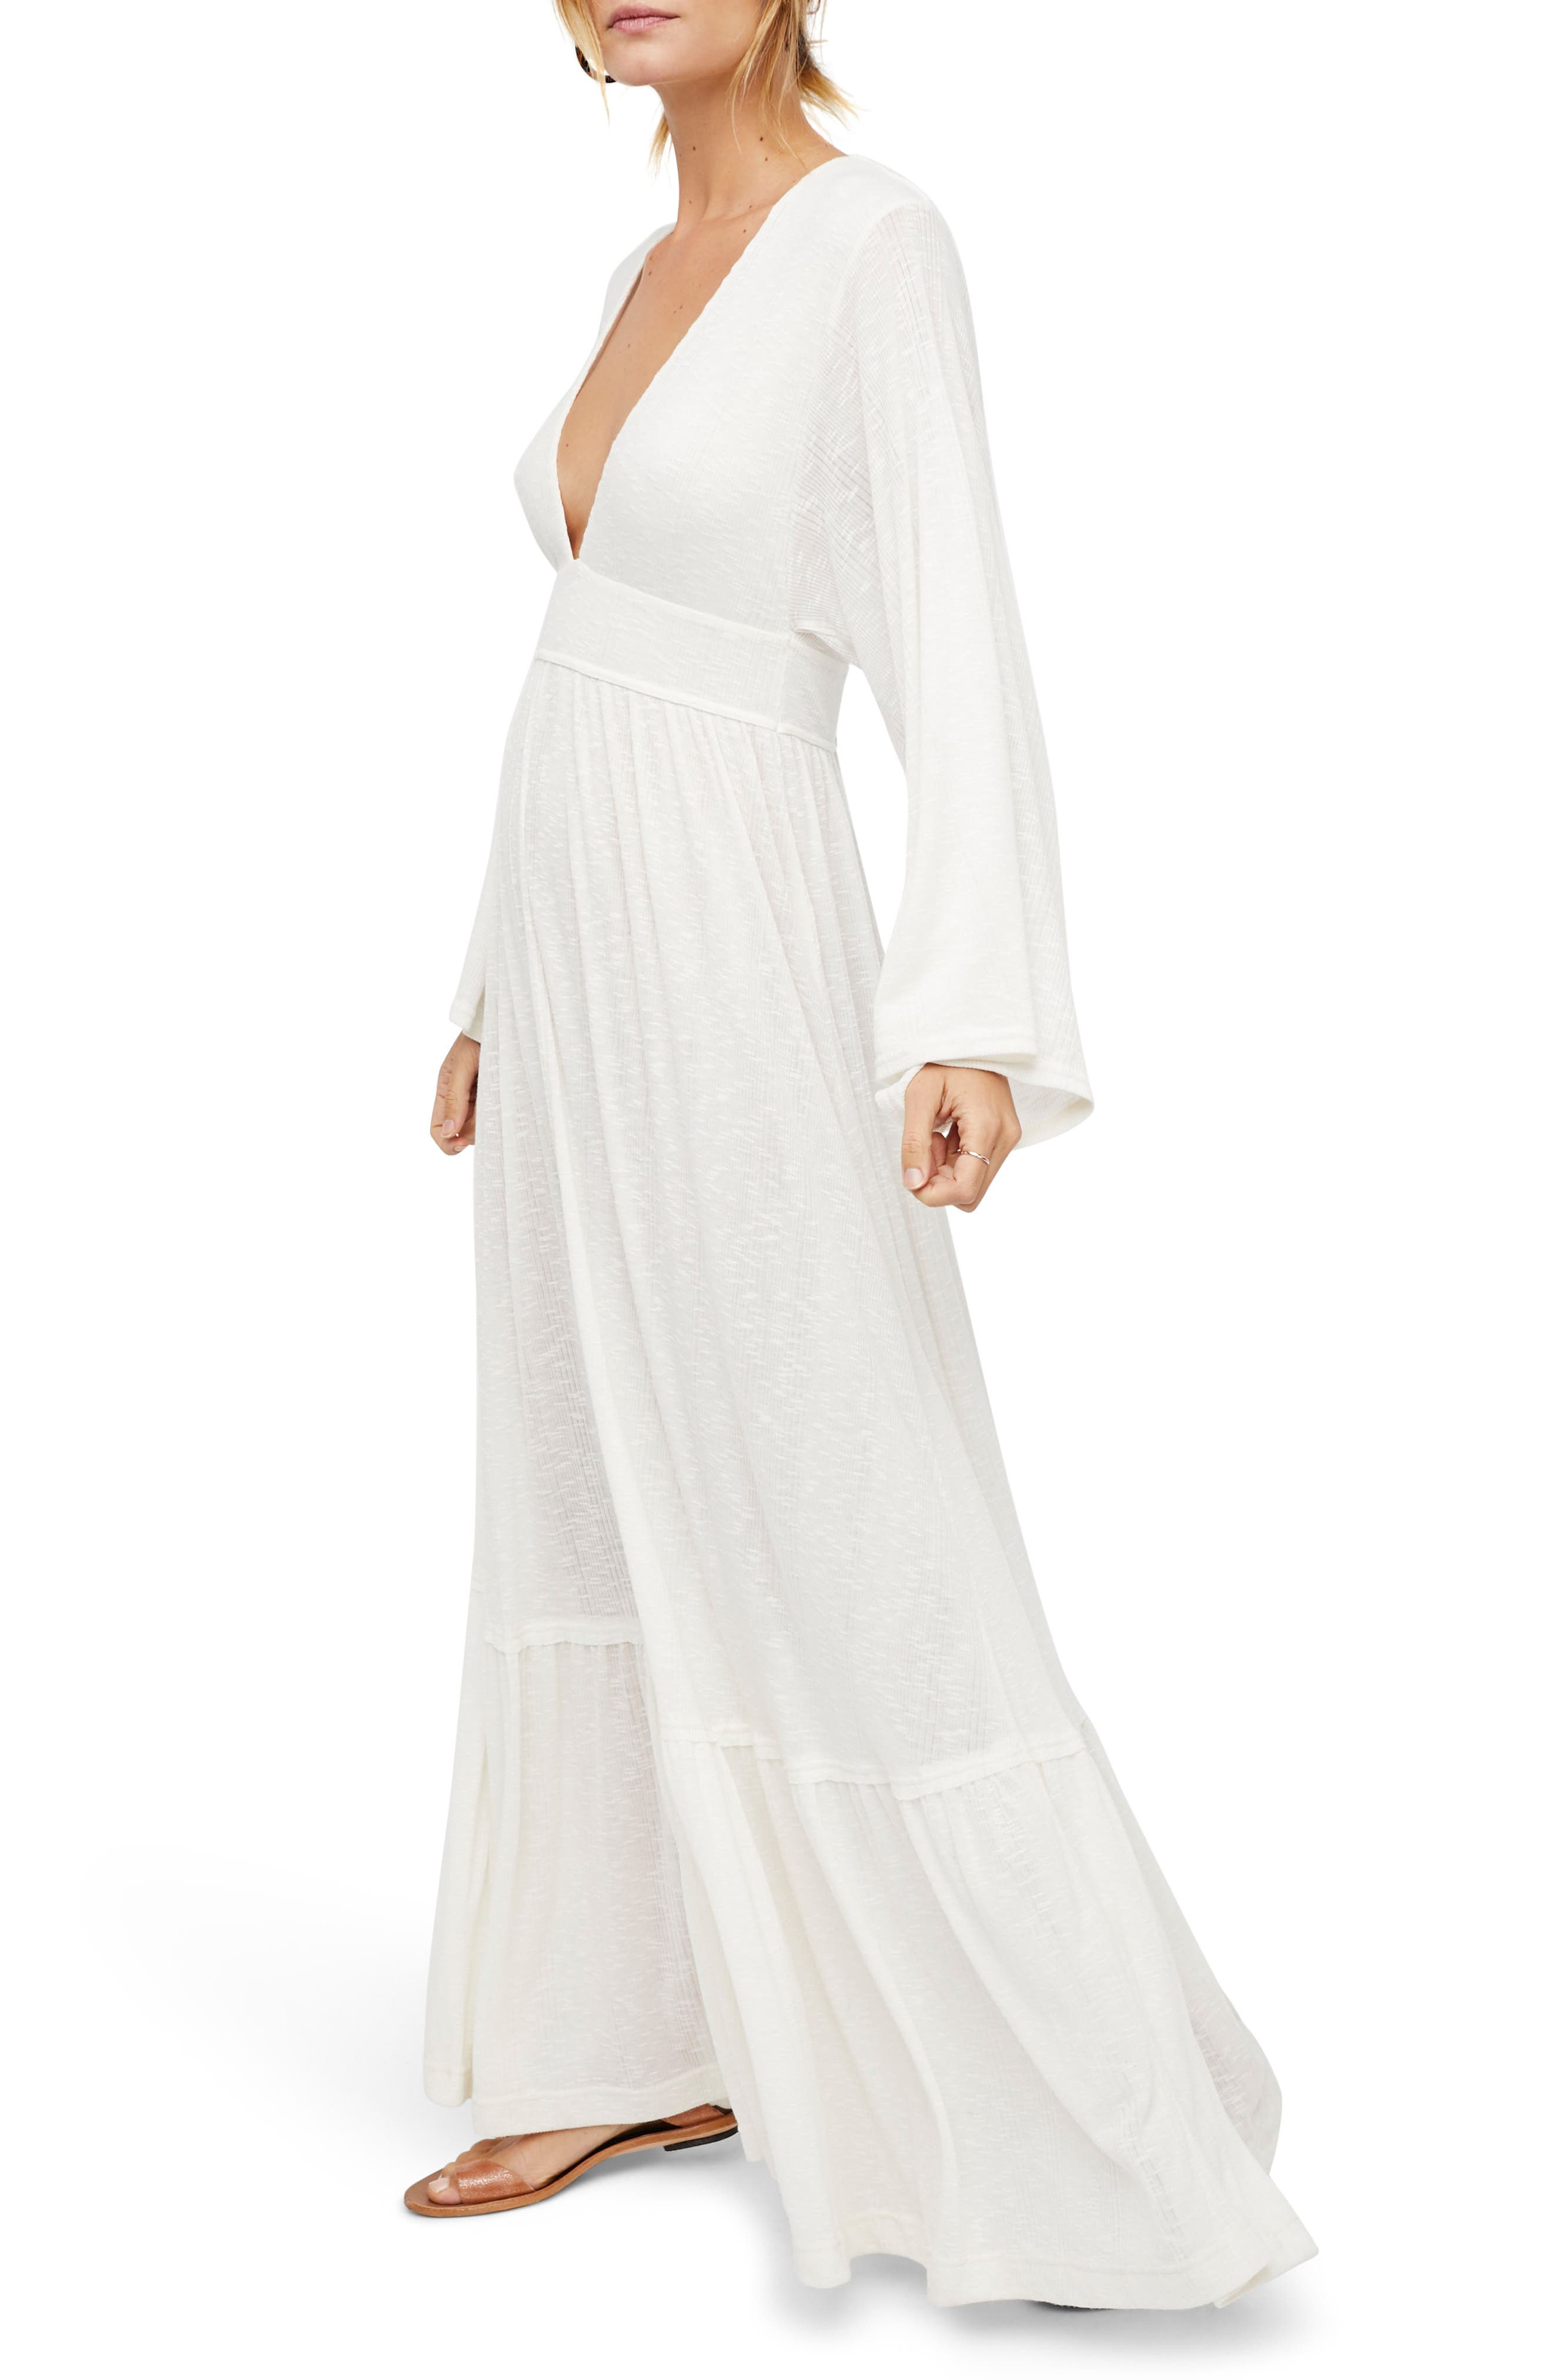 Endless Summer by Free People Moon Walking Maxi Dress,                             Main thumbnail 1, color,                             Ivory